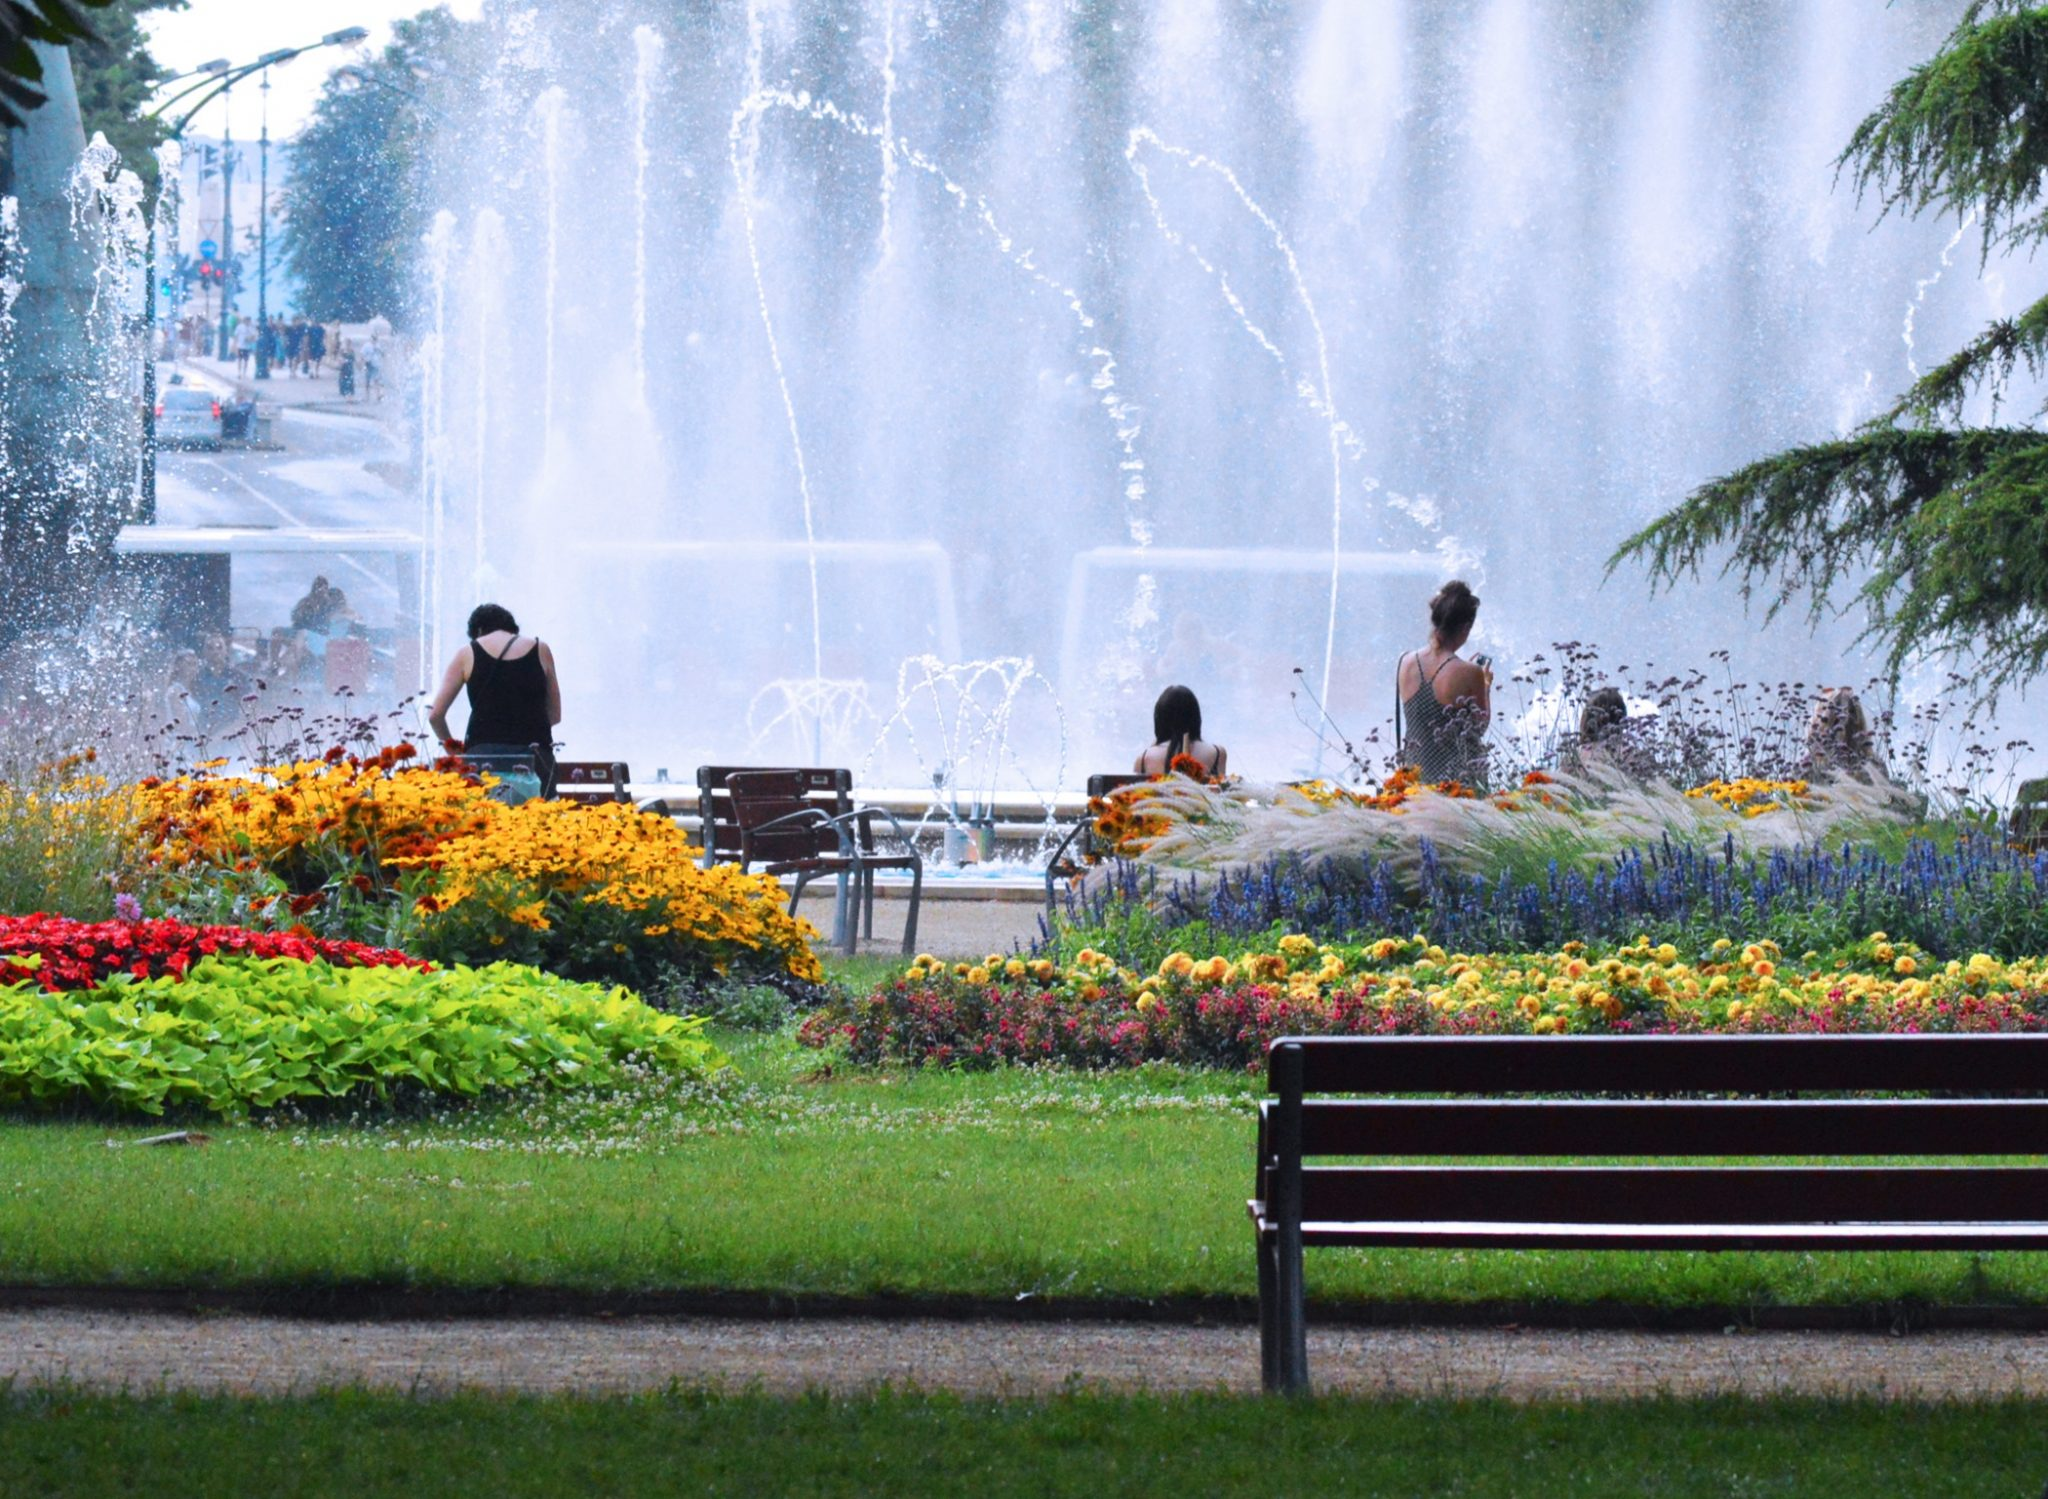 Park with fountain flowers and benches